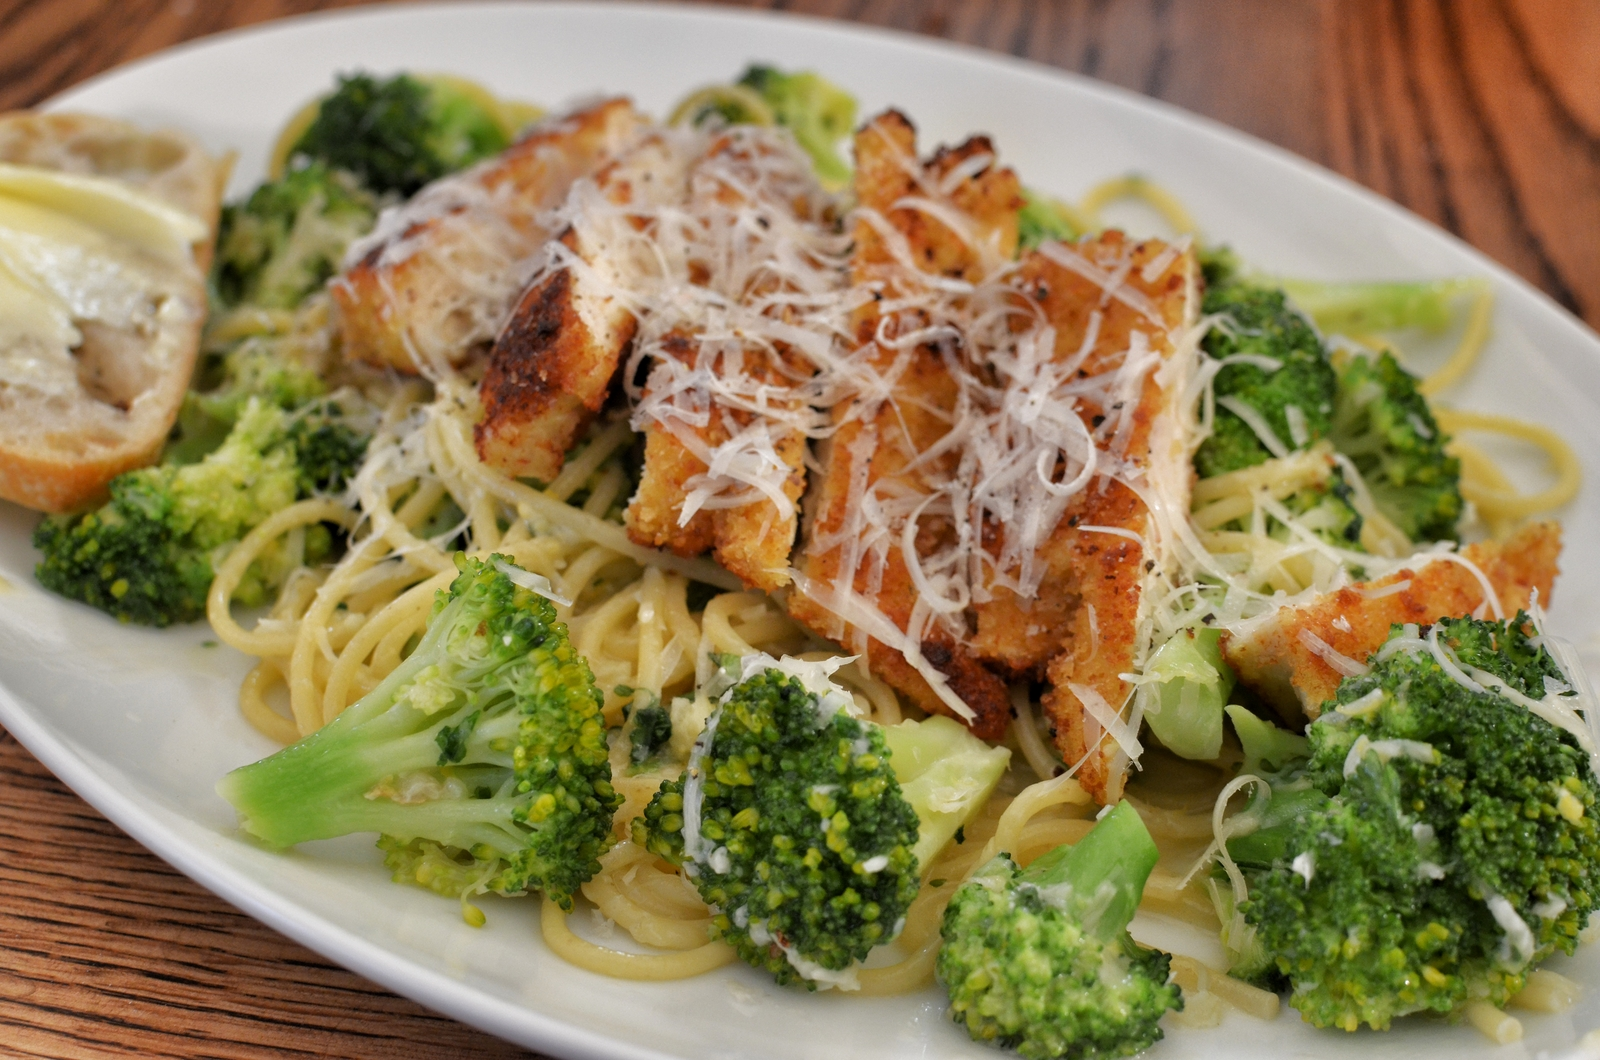 Pasta pr0n breaded chicken cutlets with spaghetti and broccoli pasta pr0n breaded chicken cutlets with spaghetti and broccoli forumfinder Images